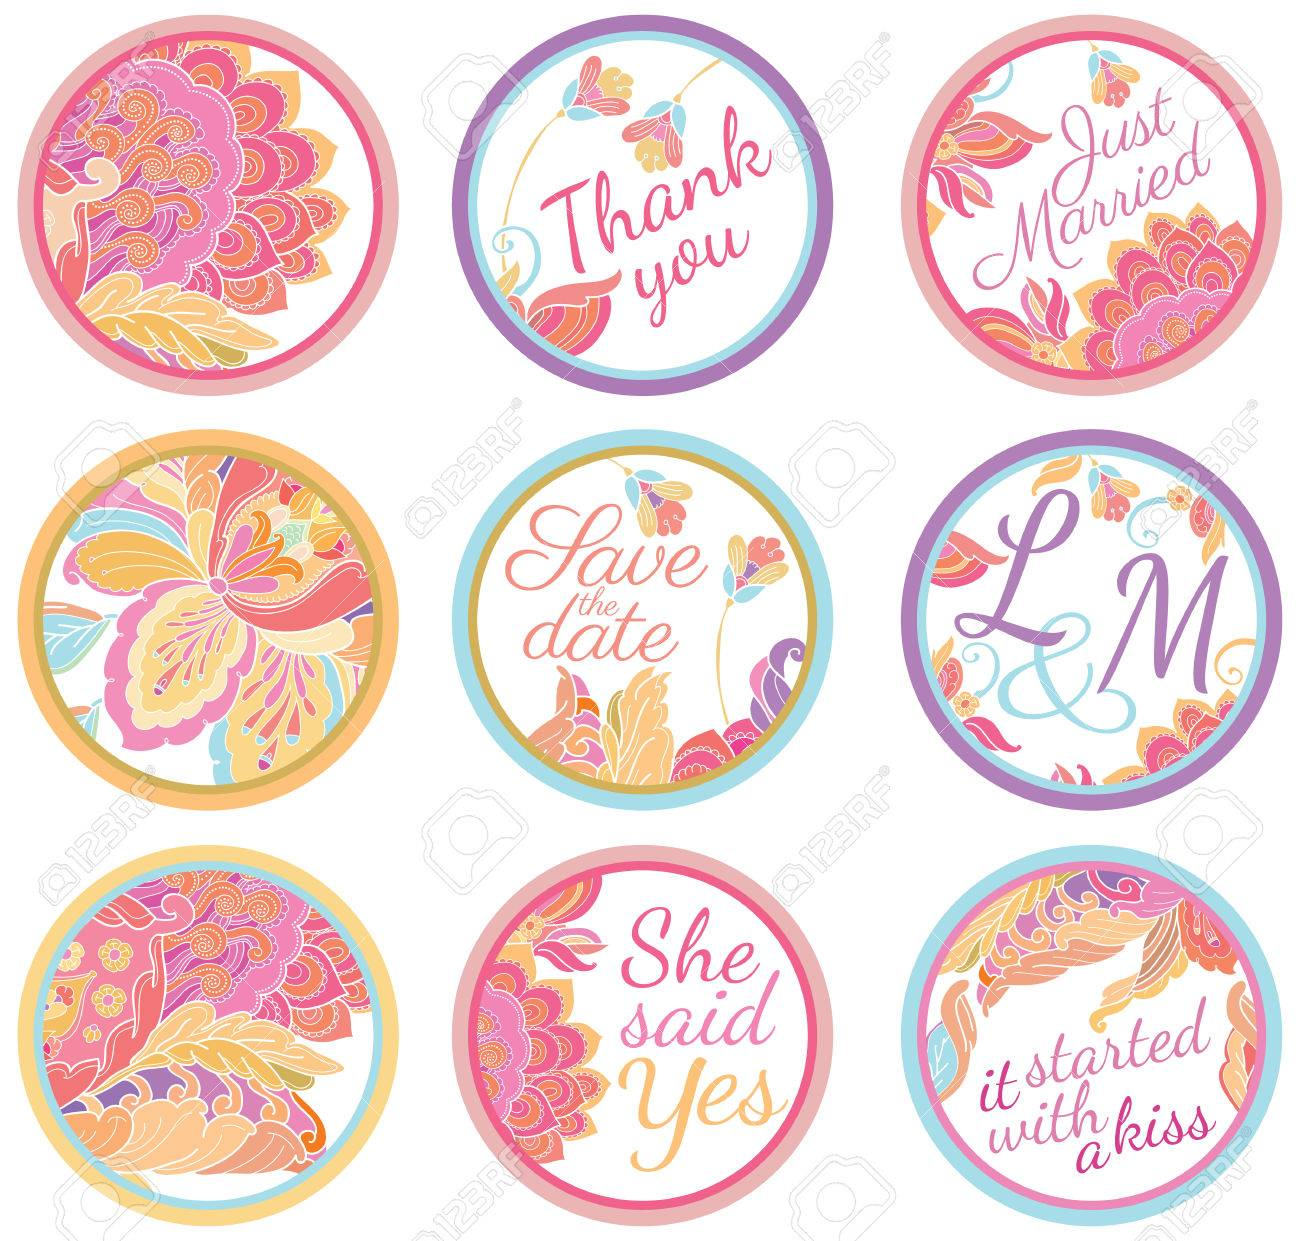 Personalized Candy Sticker Labels - Perfect Addition To Wedding ...